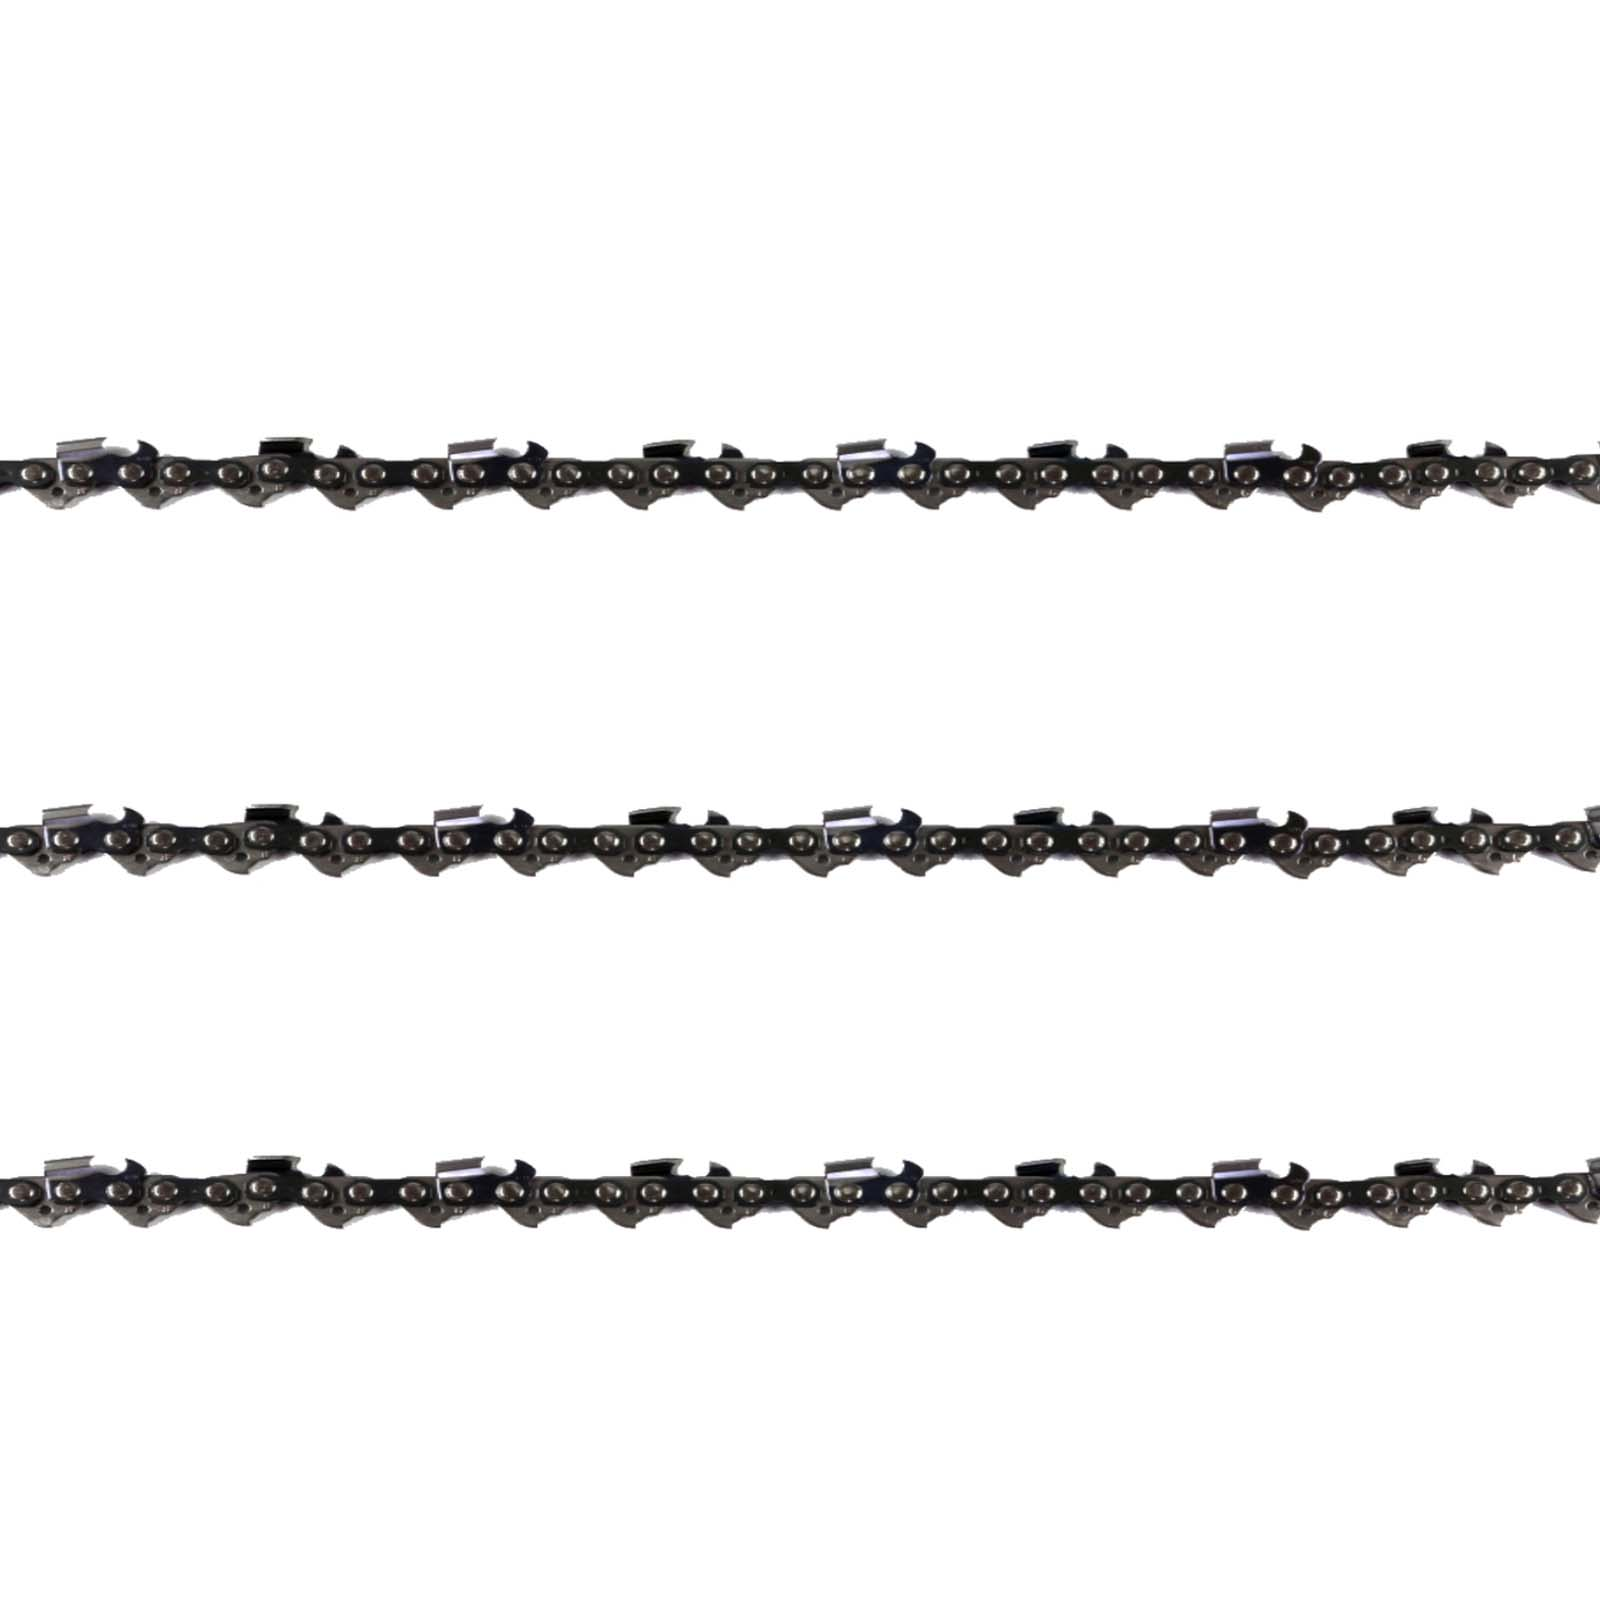 "3x Chainsaw Semi Chisel Chains 3/8LP 043 44DL for Black And Decker 12"" Bar"